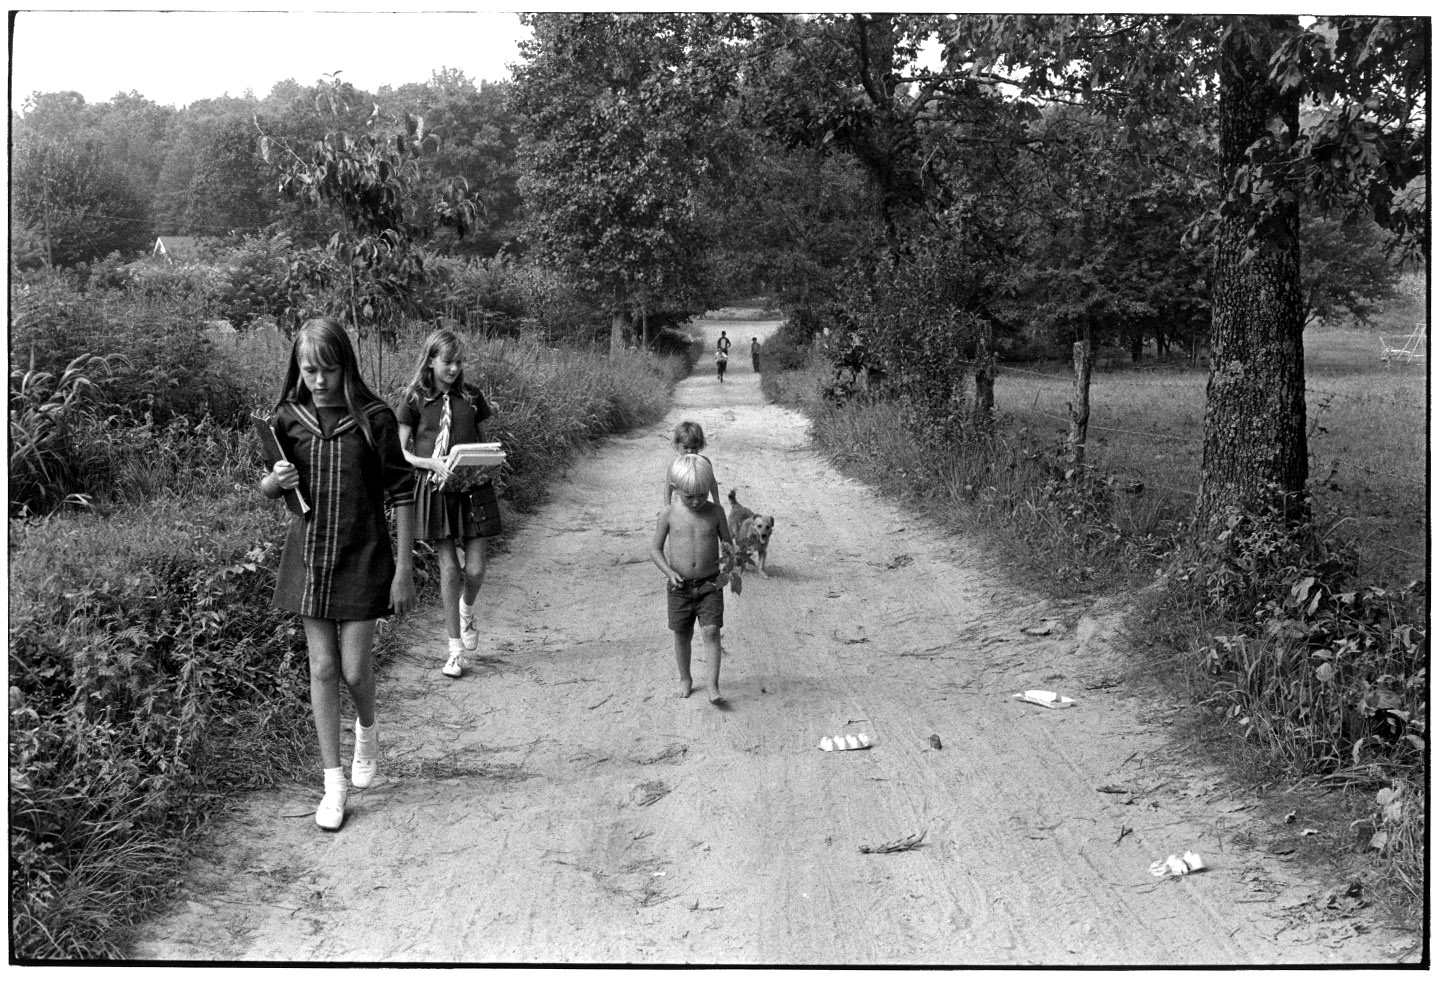 """""""Children and a dog walking on dirt road; two girls carrying books"""" - William Gedney, 1972"""